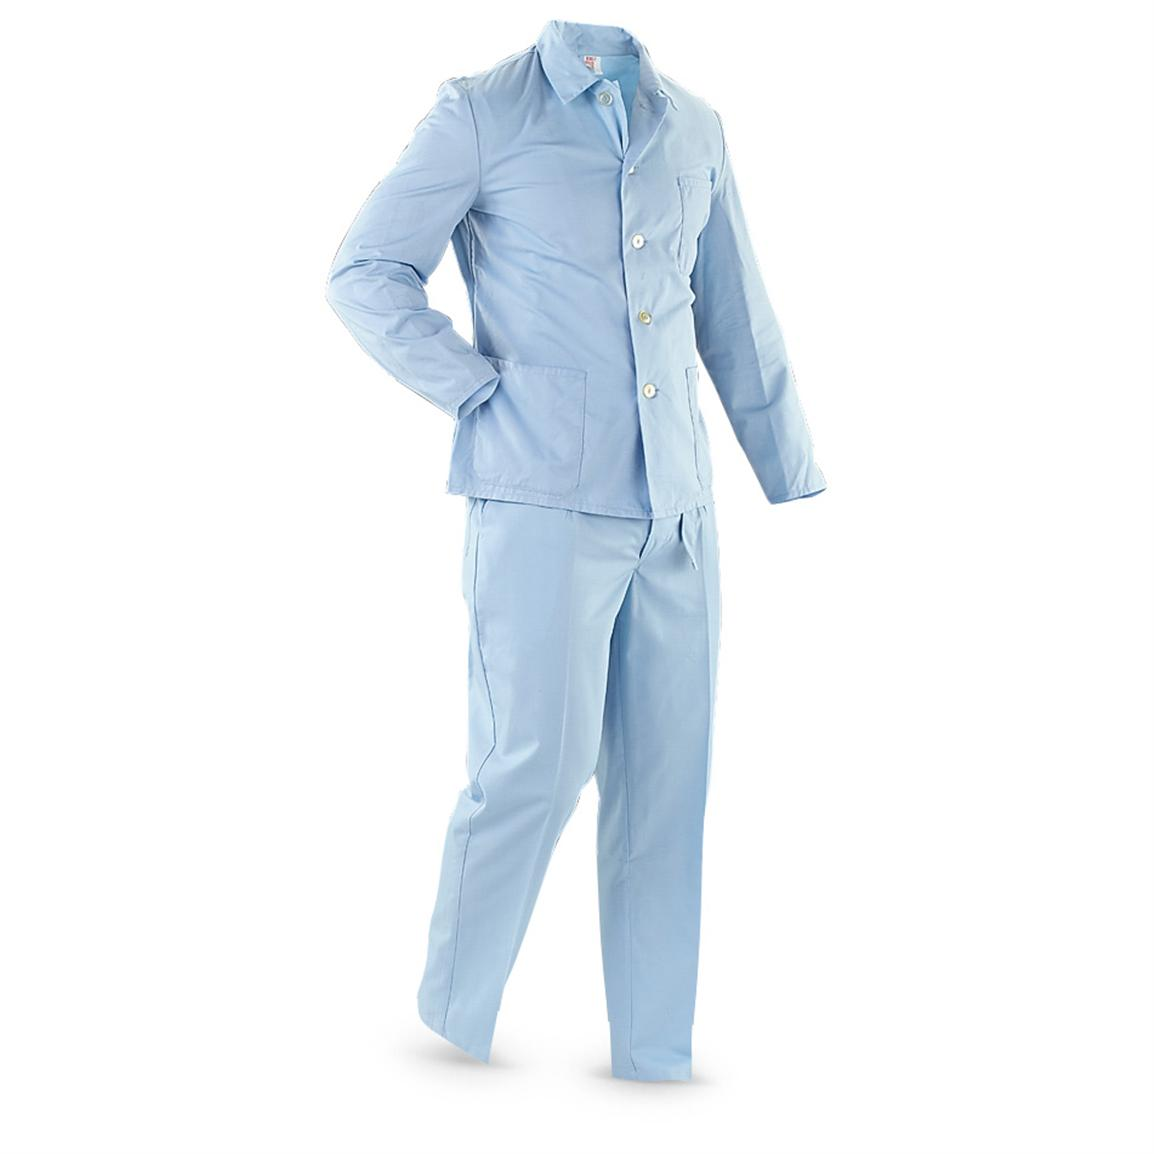 New German Military Hospital Scrubs, Light Blue